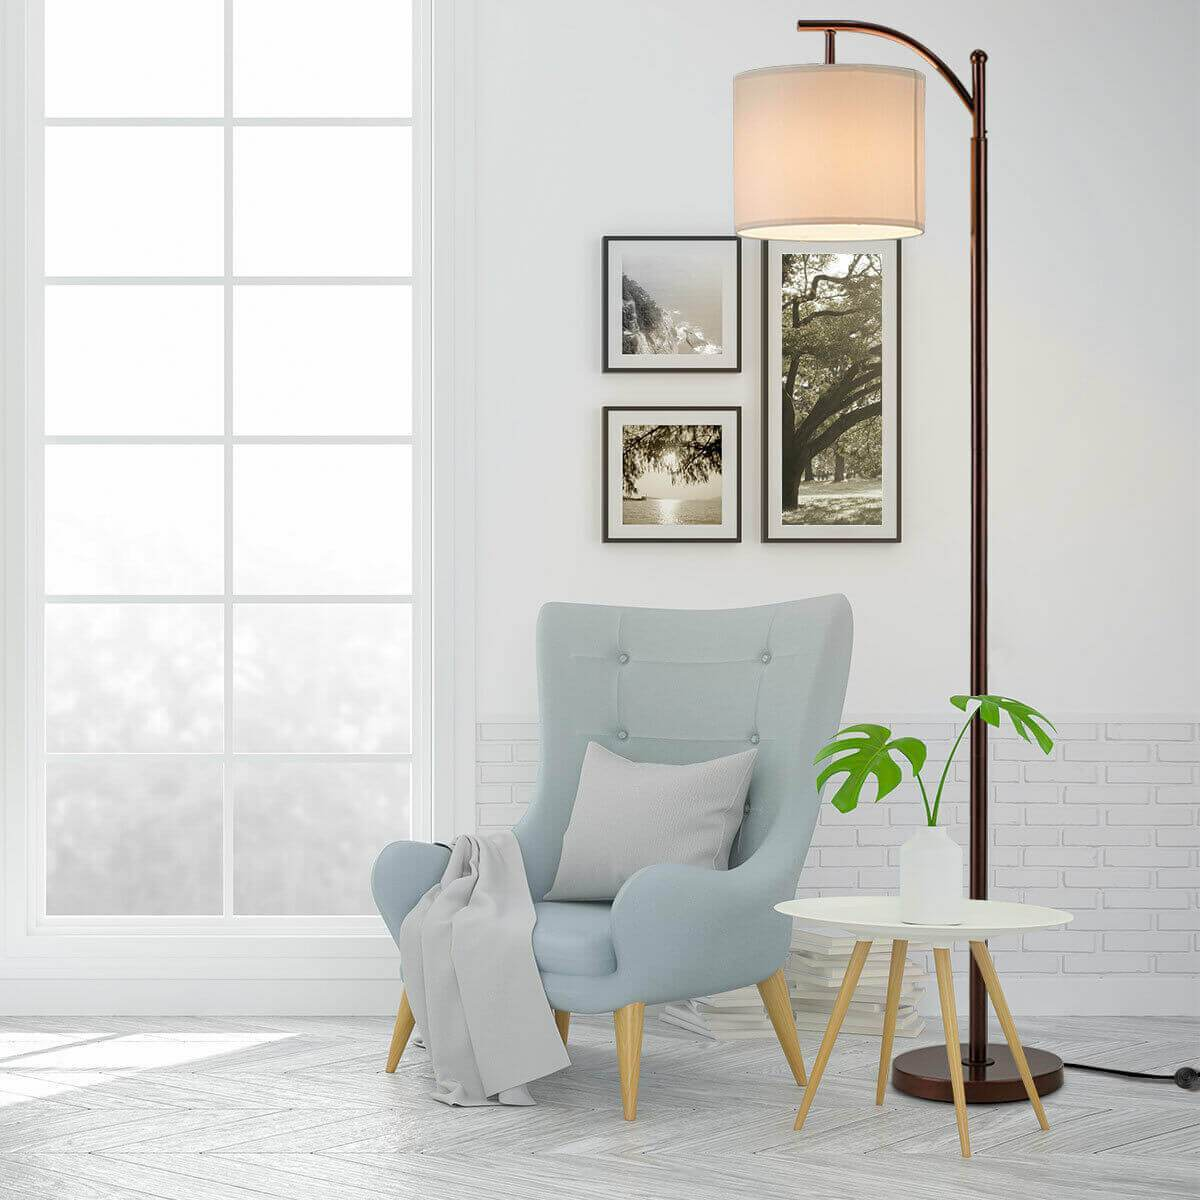 Standing Industrial Arc Light with Hanging Lamp Shade Bedroom - Atcreative